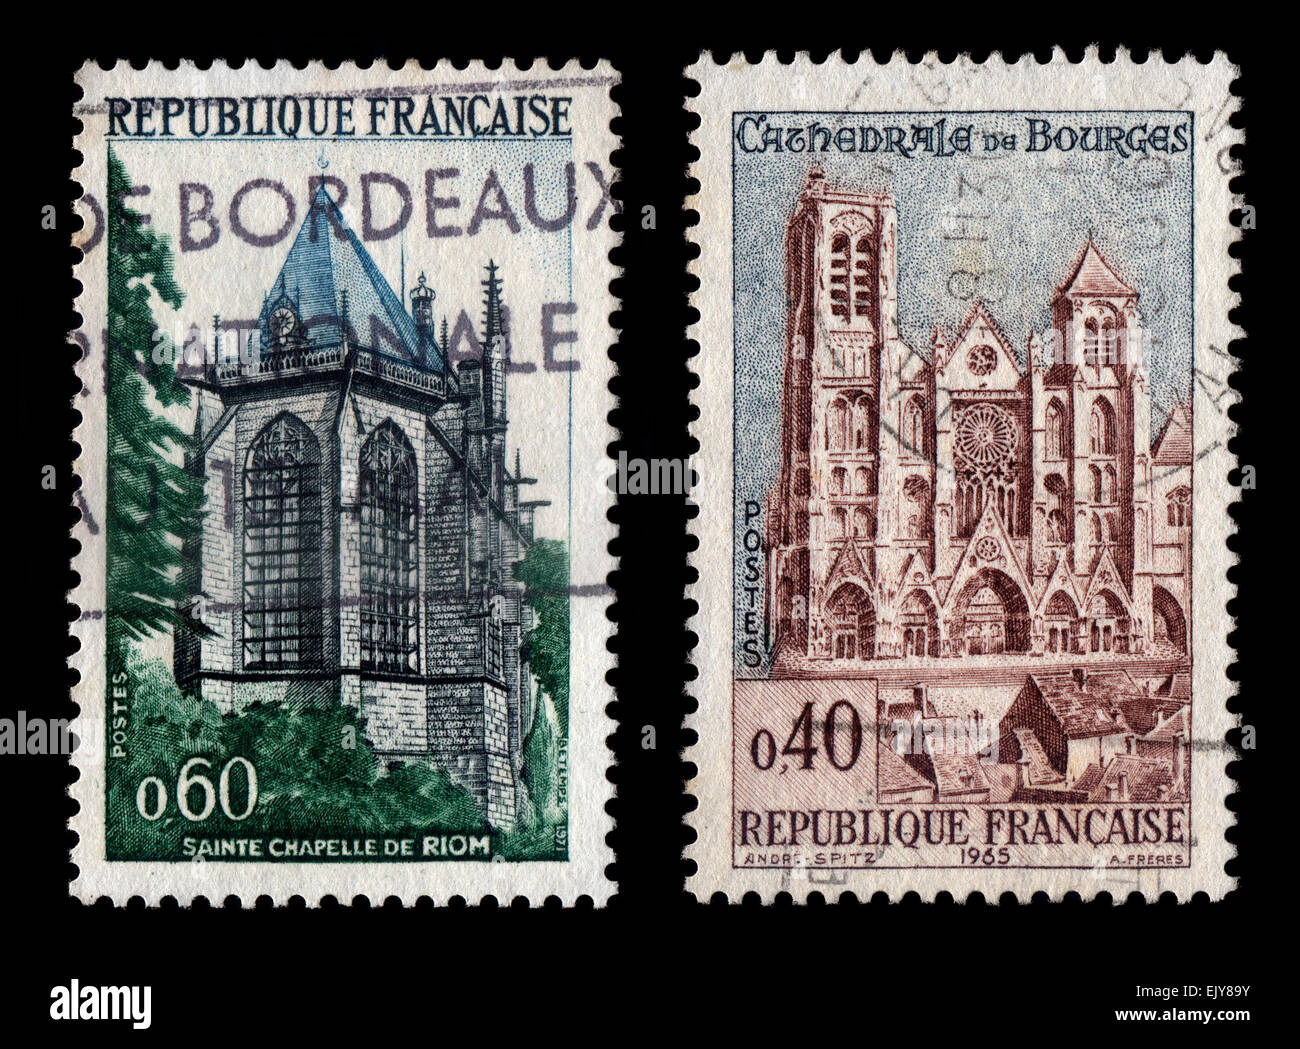 French Postage Stamps - Stock Image